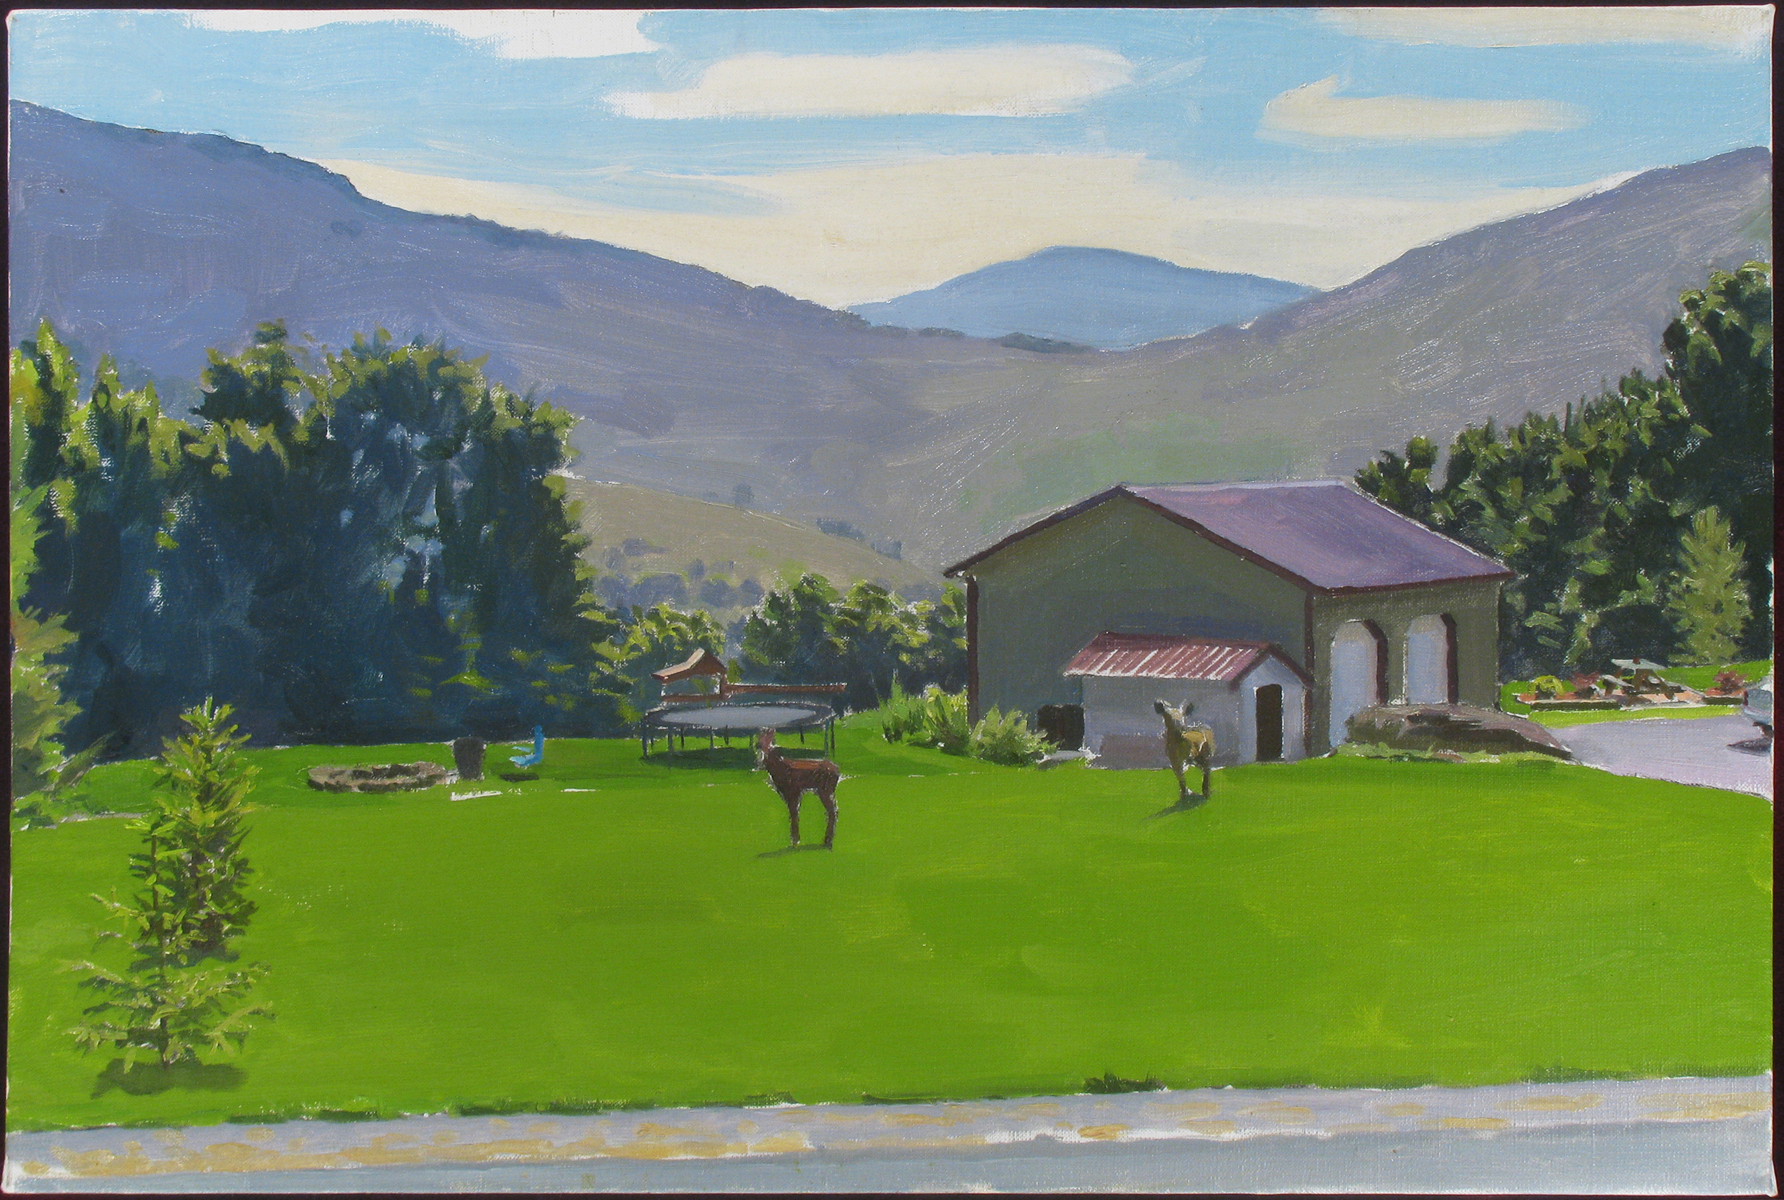 "LAWN oil on linen 18 x 24"" 2012 (sold)"